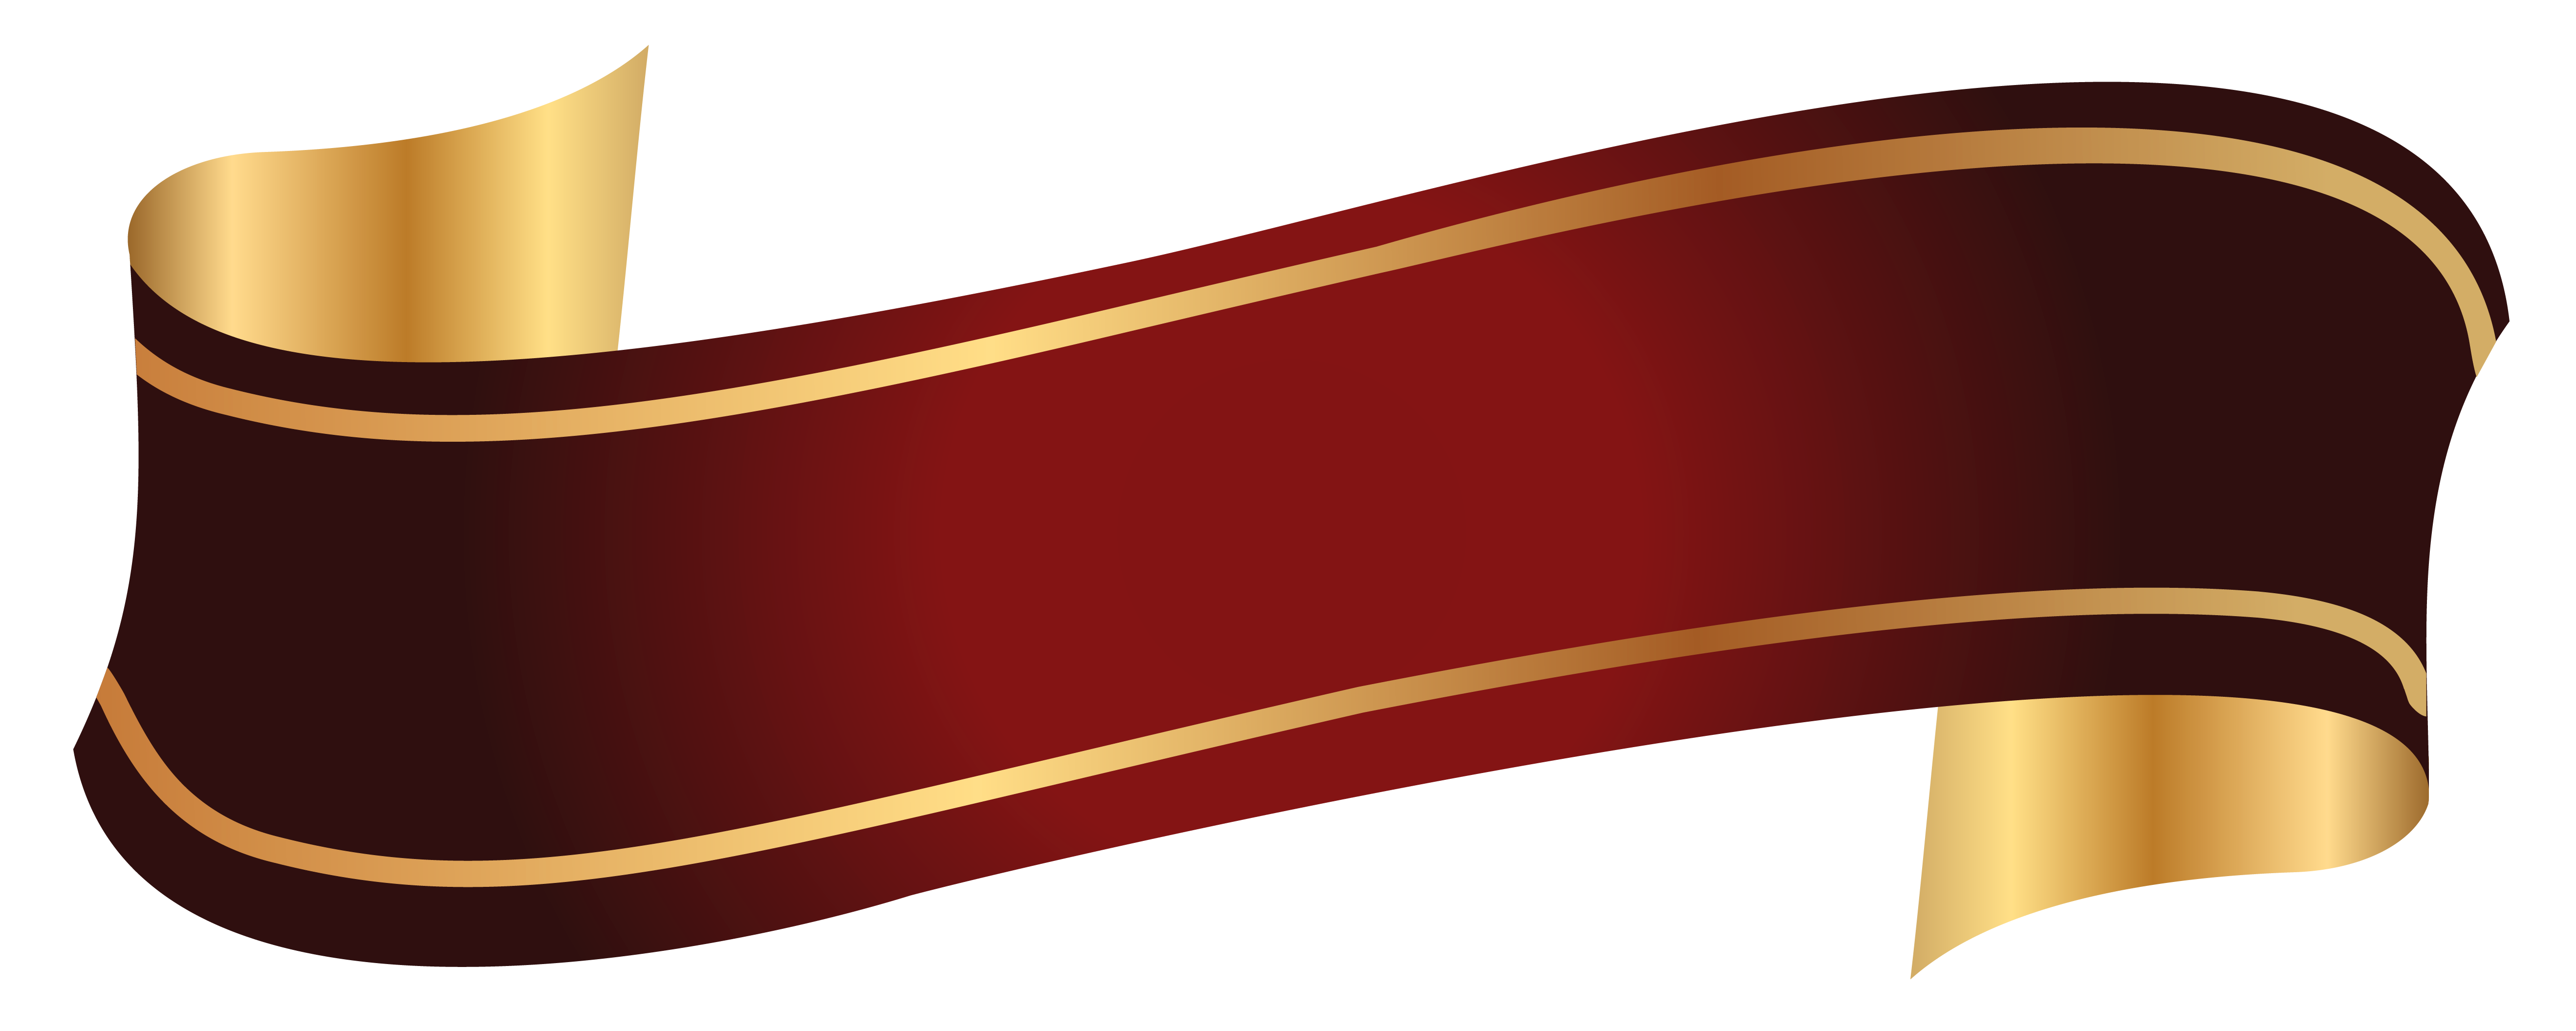 Gold ribbon banner png. Pin by andrea on